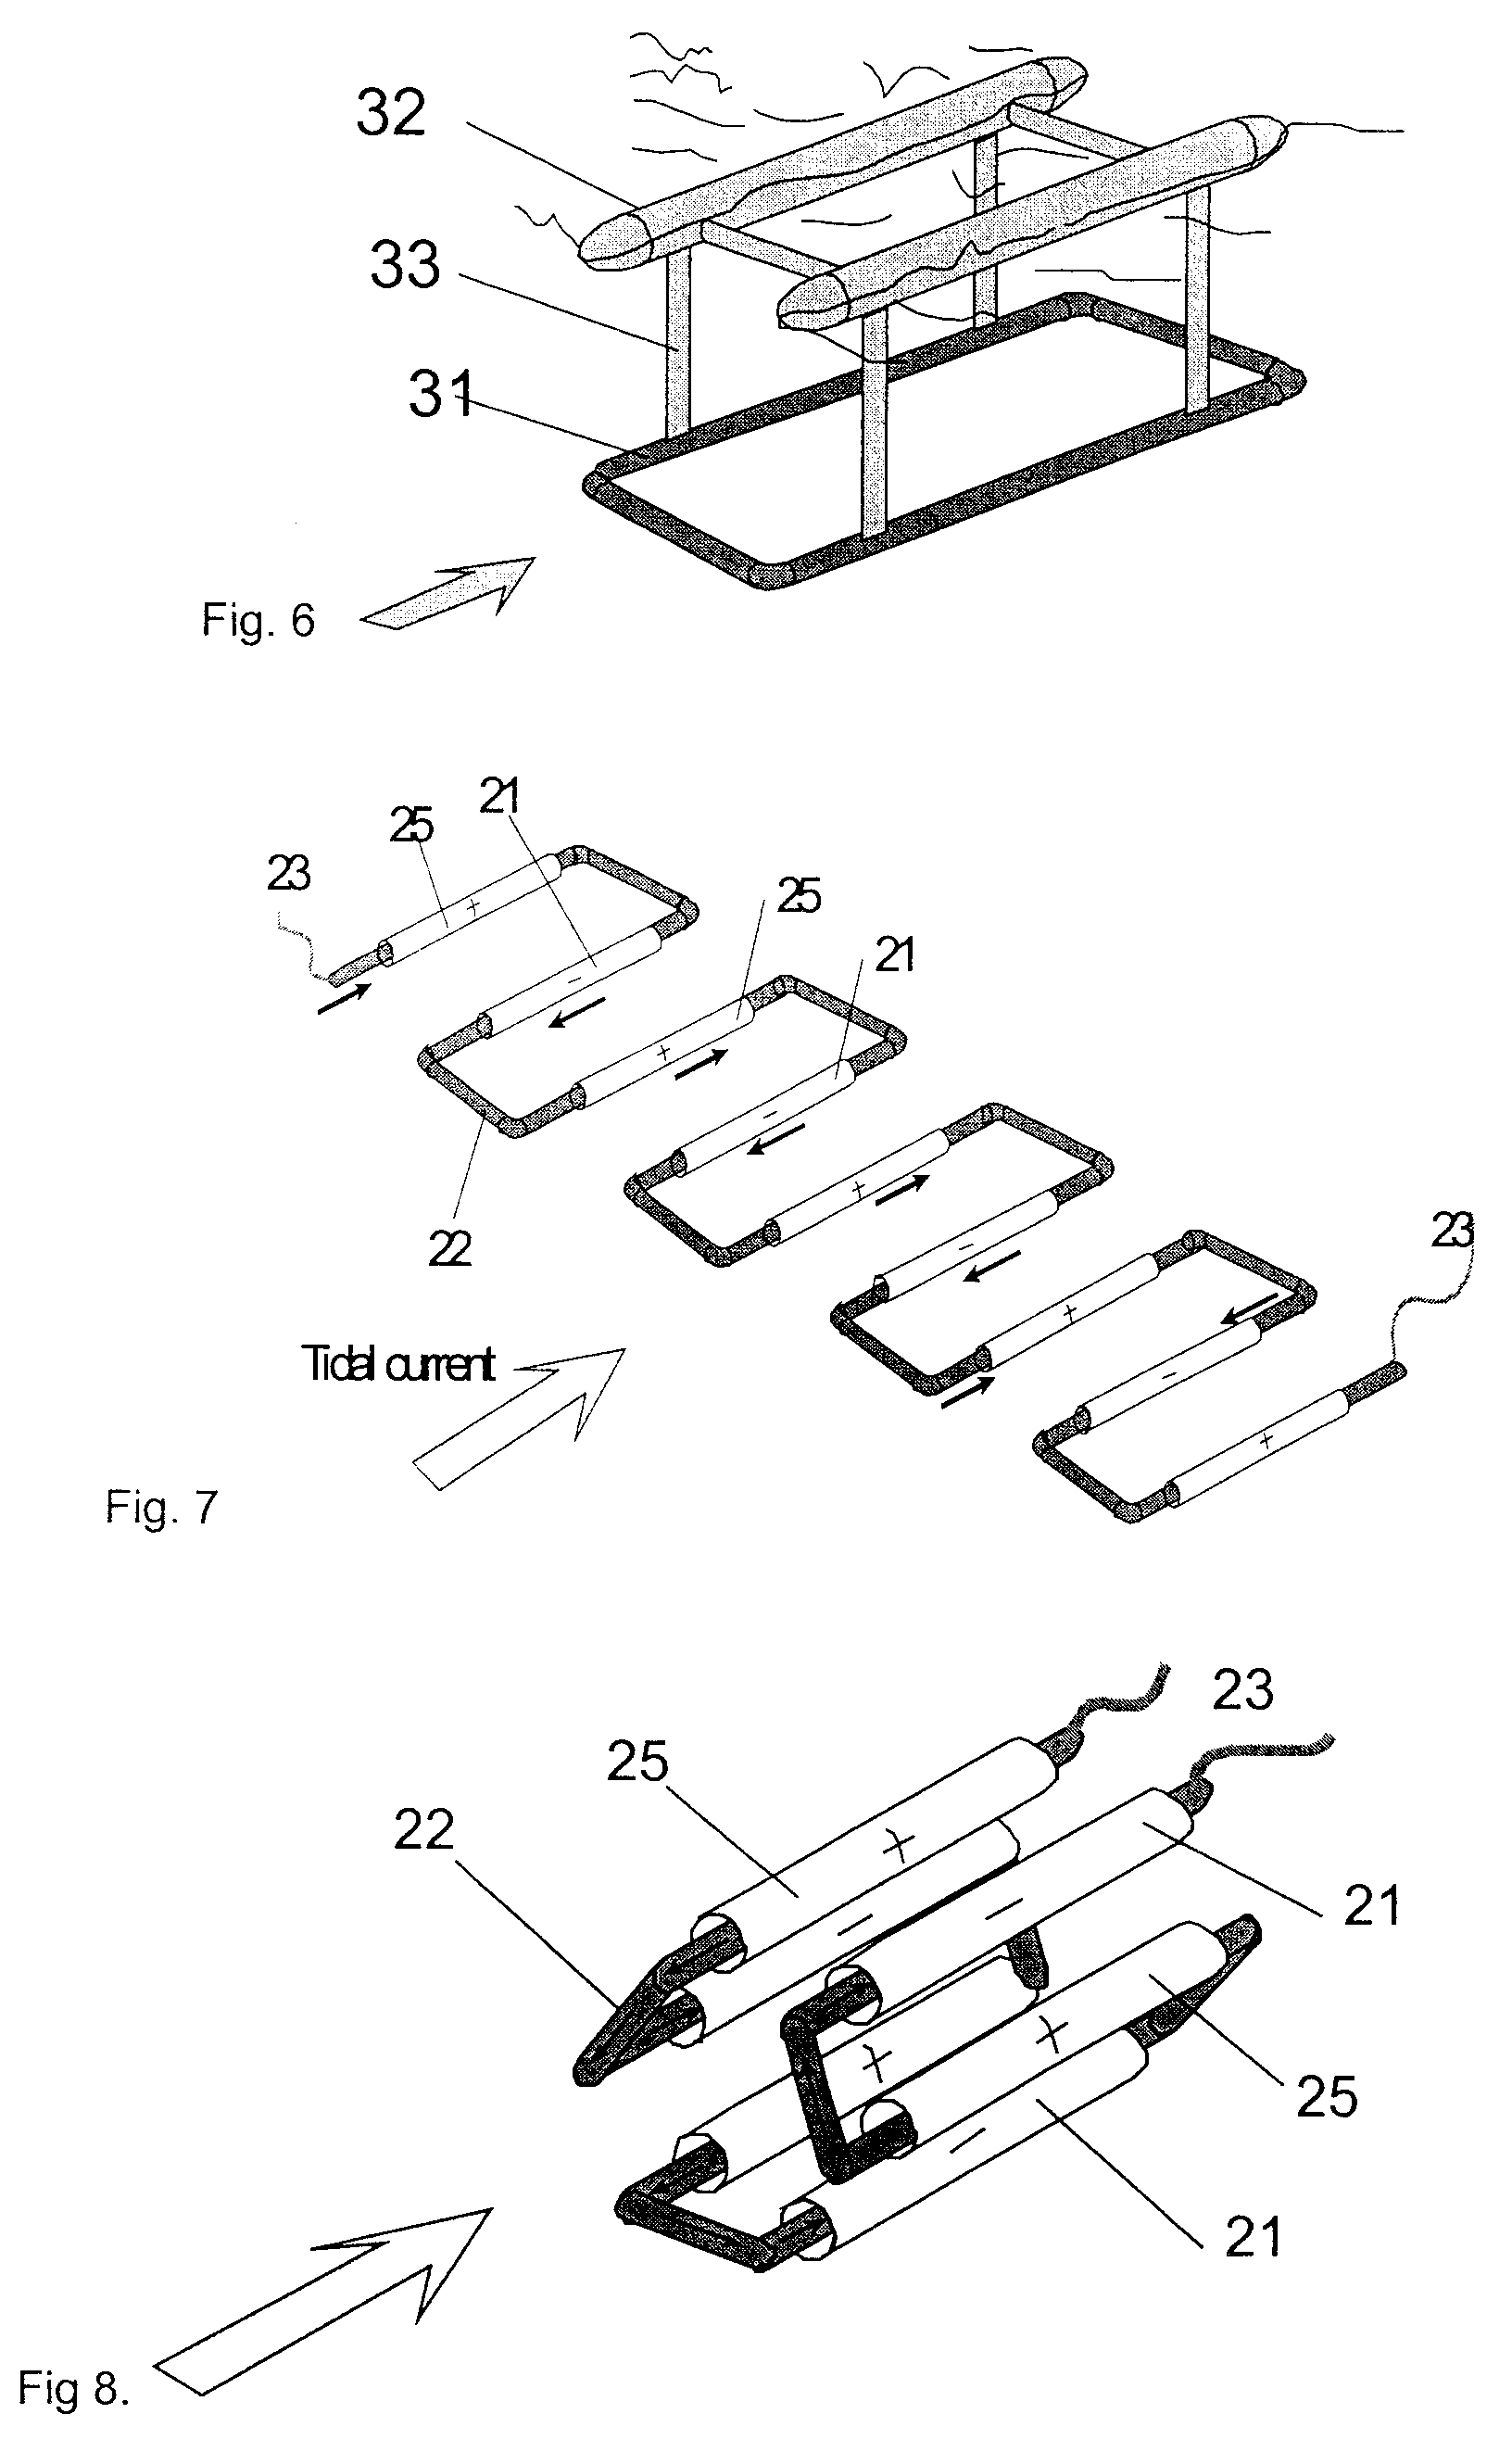 Magneto hydro dynamical tidal and ocean current converter - Patent